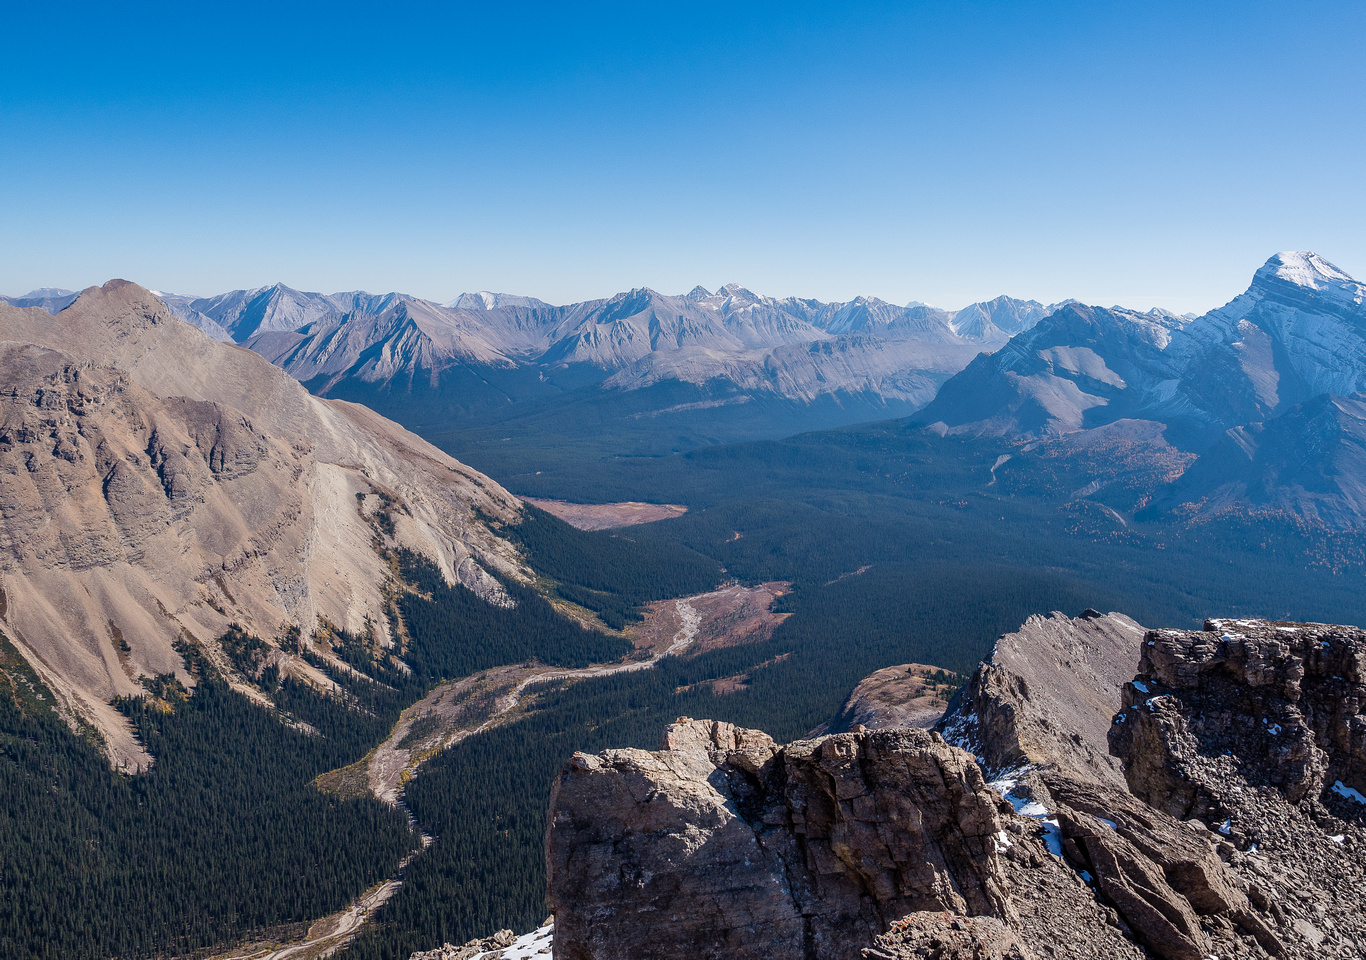 Looking past Mount Douglas (R) towards the Sawback Range and distant peaks such as Gable and Barrier in the Ya Ha Tinda region of the front ranges.